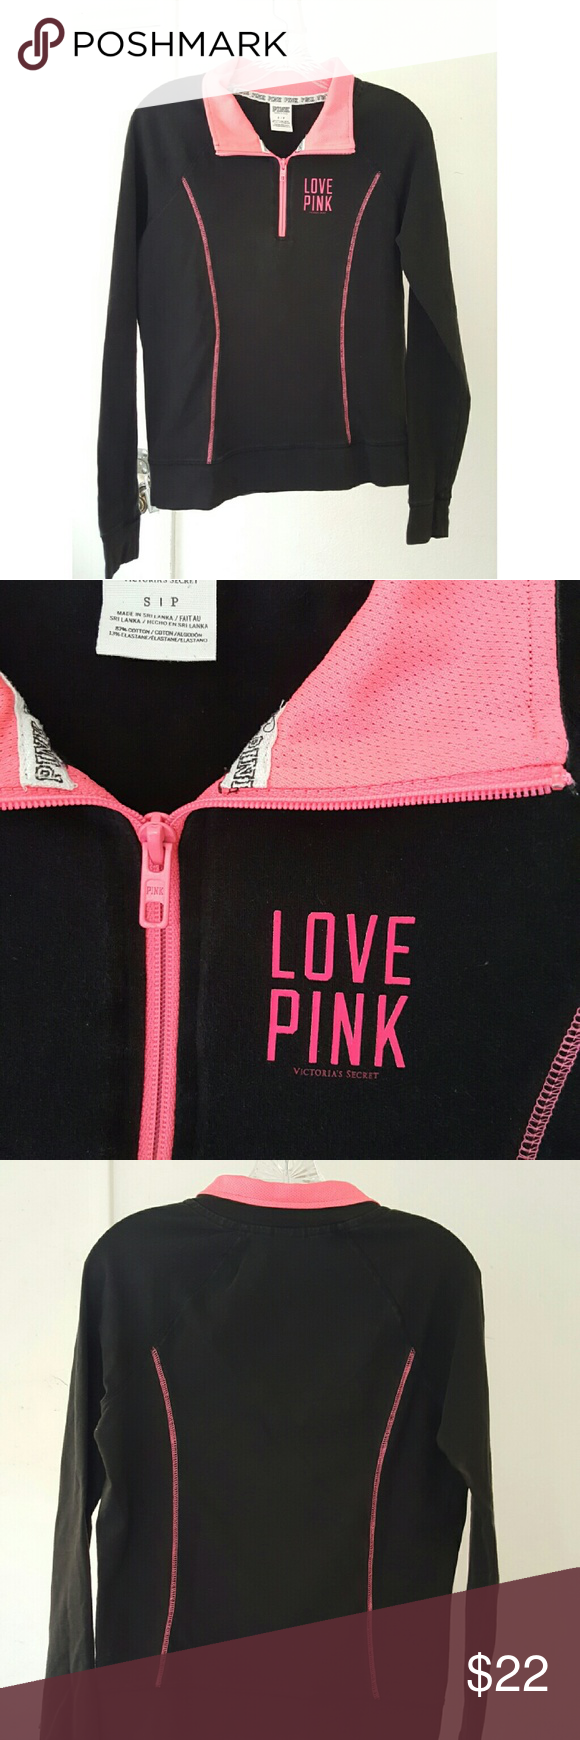 Pink half zip pullover Black and hot pink half zip pullover. Stretchy material. Fitted. Athletic wear.  Victoria's Secret PINK No trades! PINK Victoria's Secret Tops Sweatshirts & Hoodies